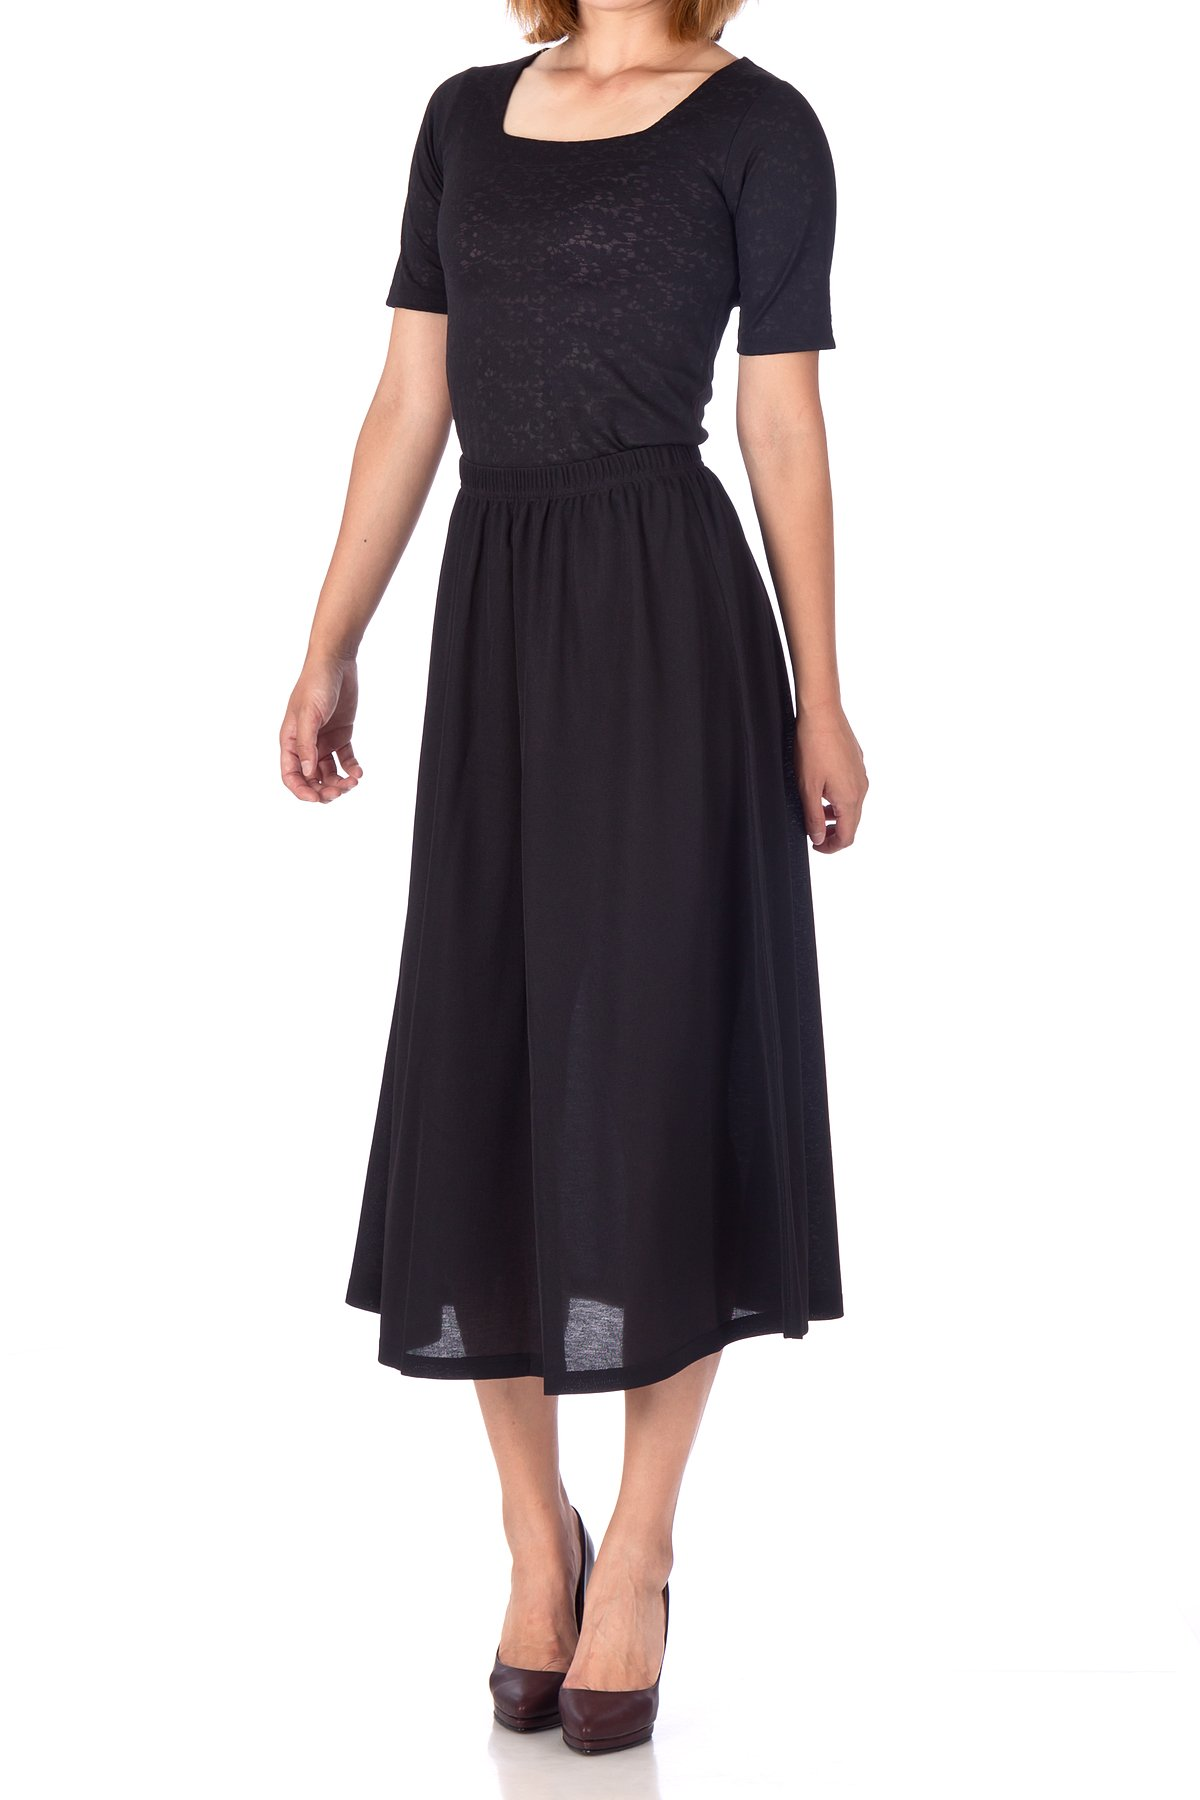 Brilliant Elastic Waist Full Flared Long Skirt Black 03